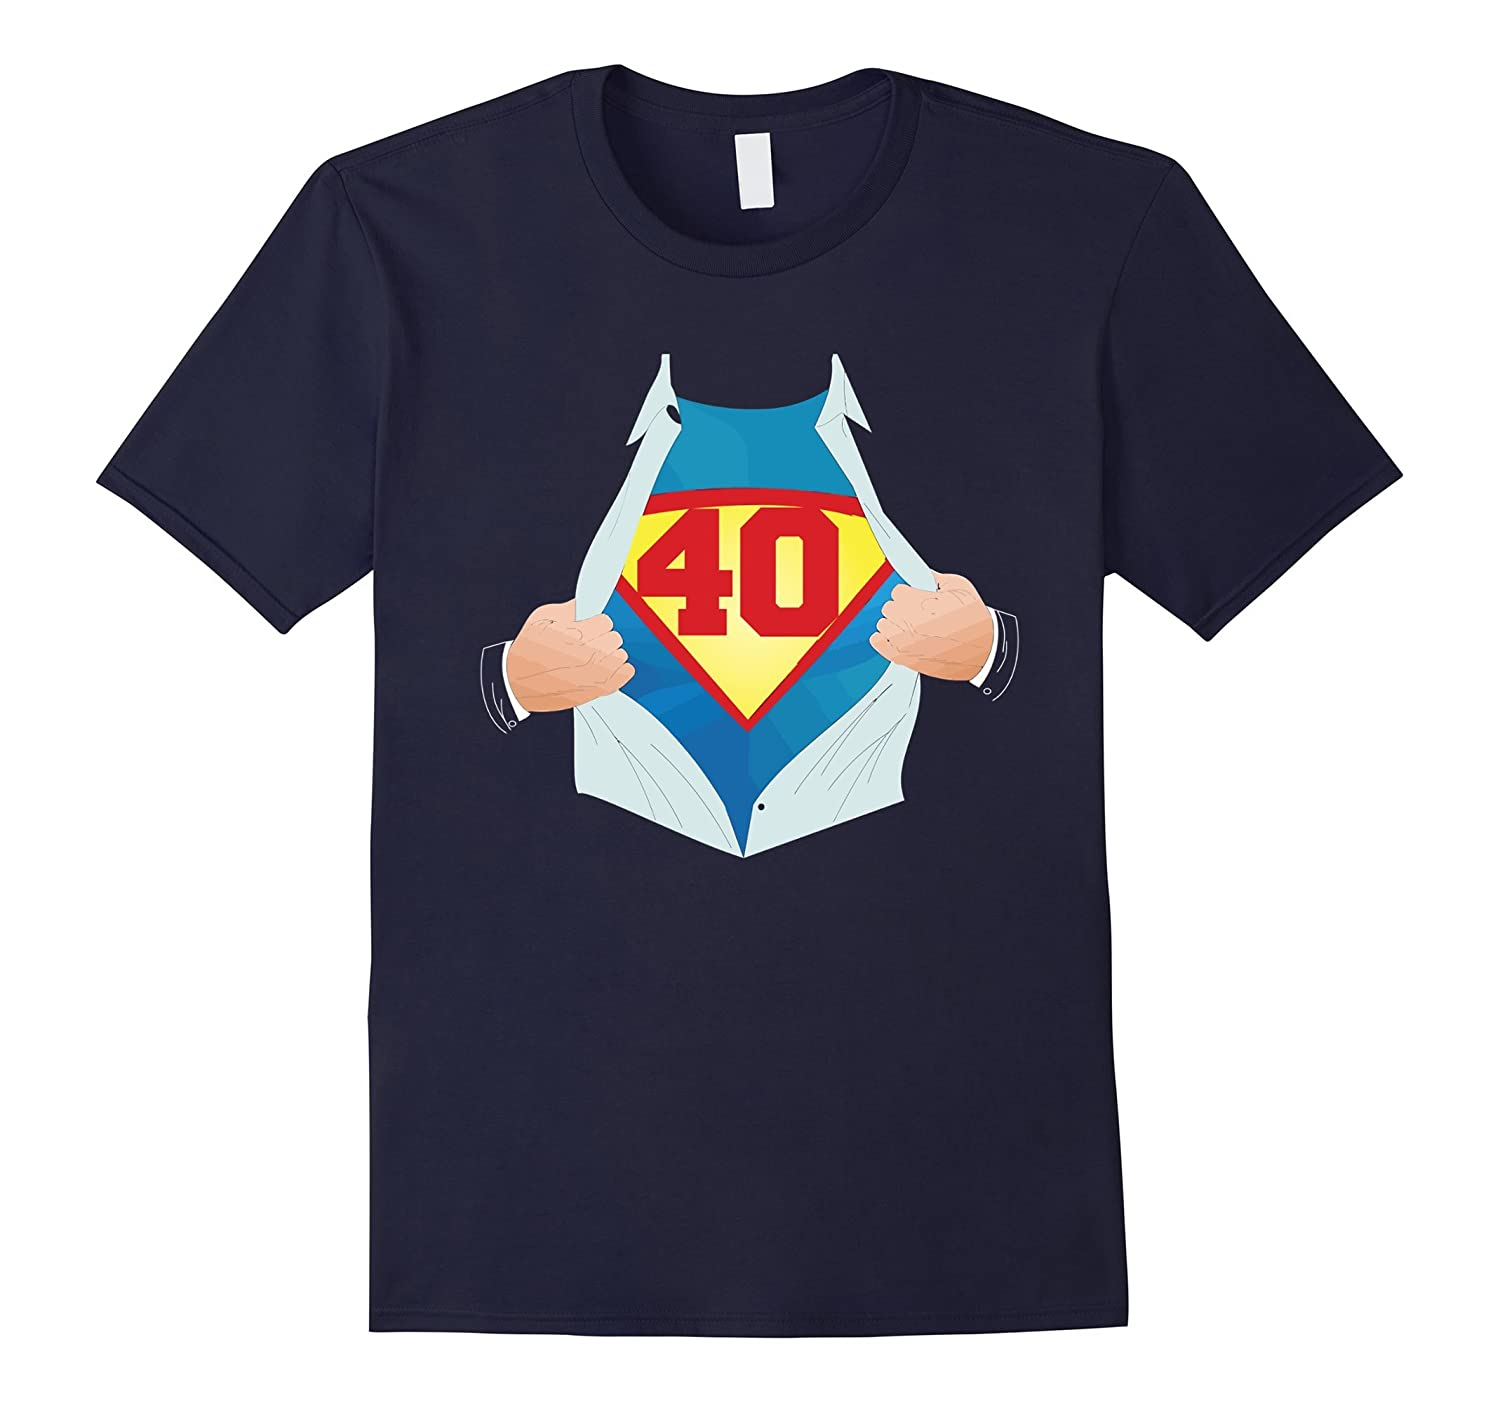 40th Birthday Super-Hero Gift 1976 T-Shirt 40 Years Old-BN